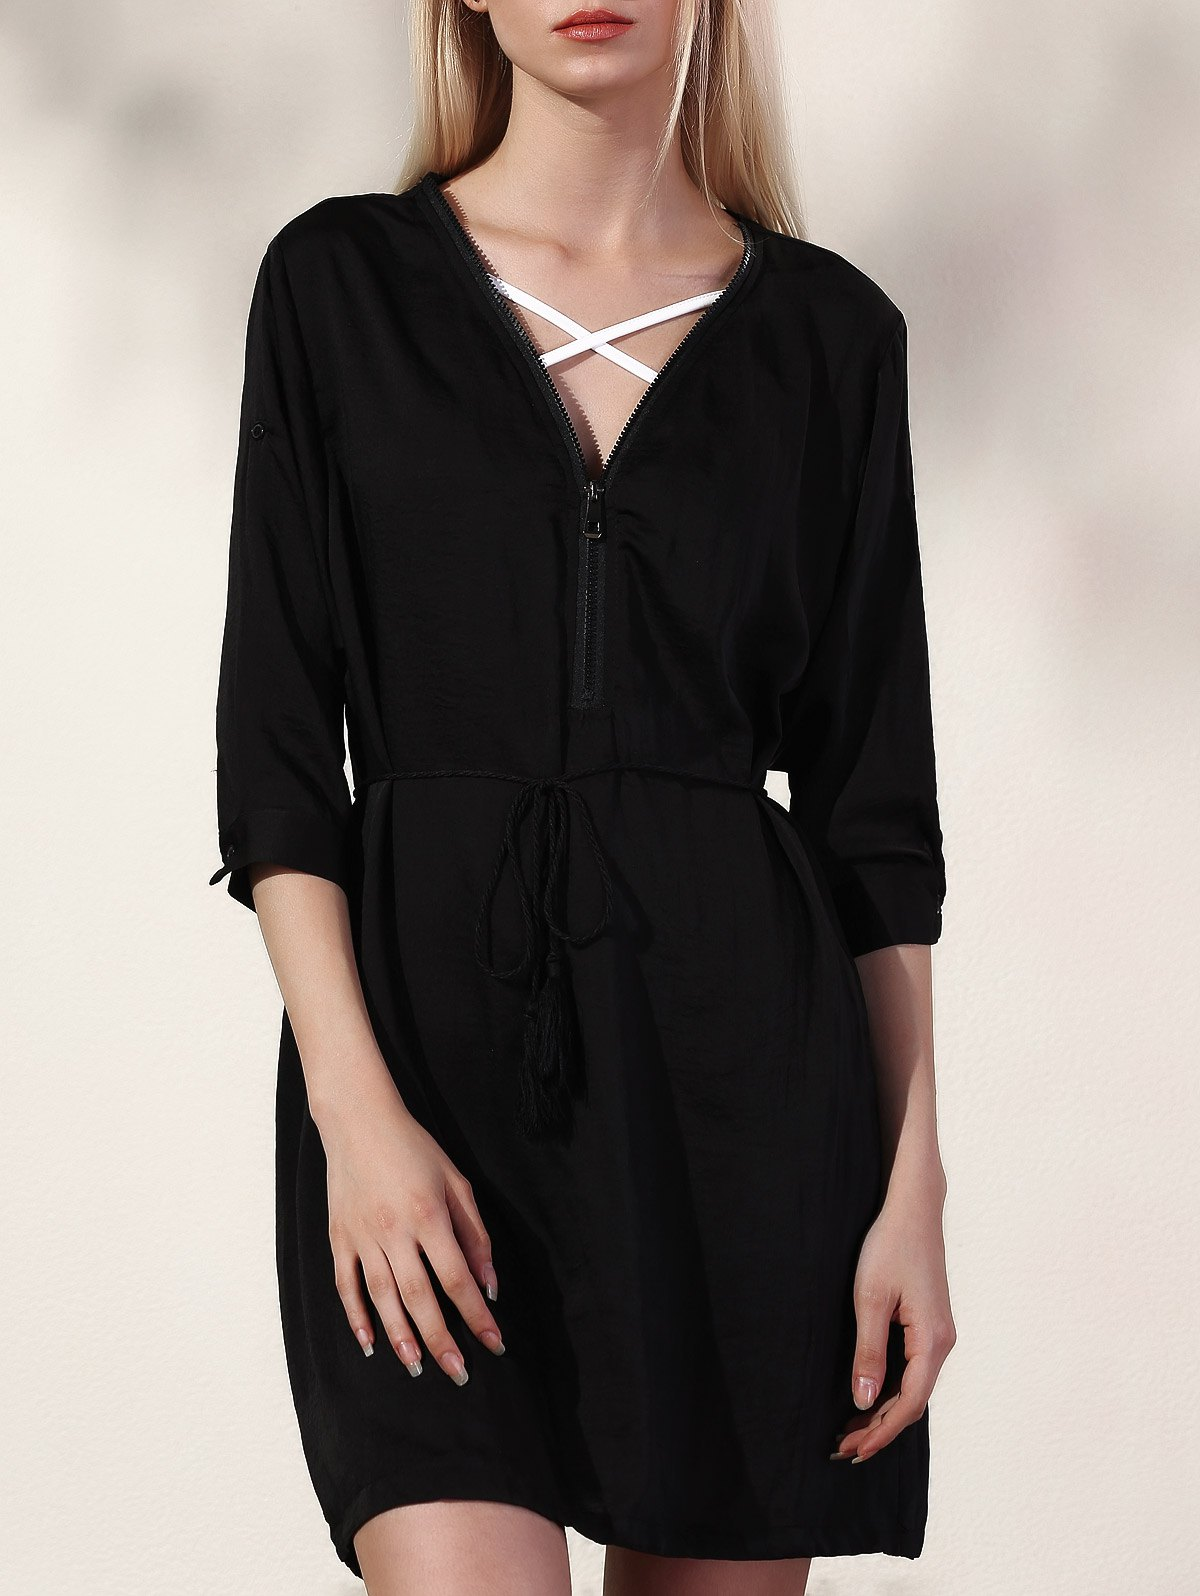 V Neck Half Sleeve Black Dress